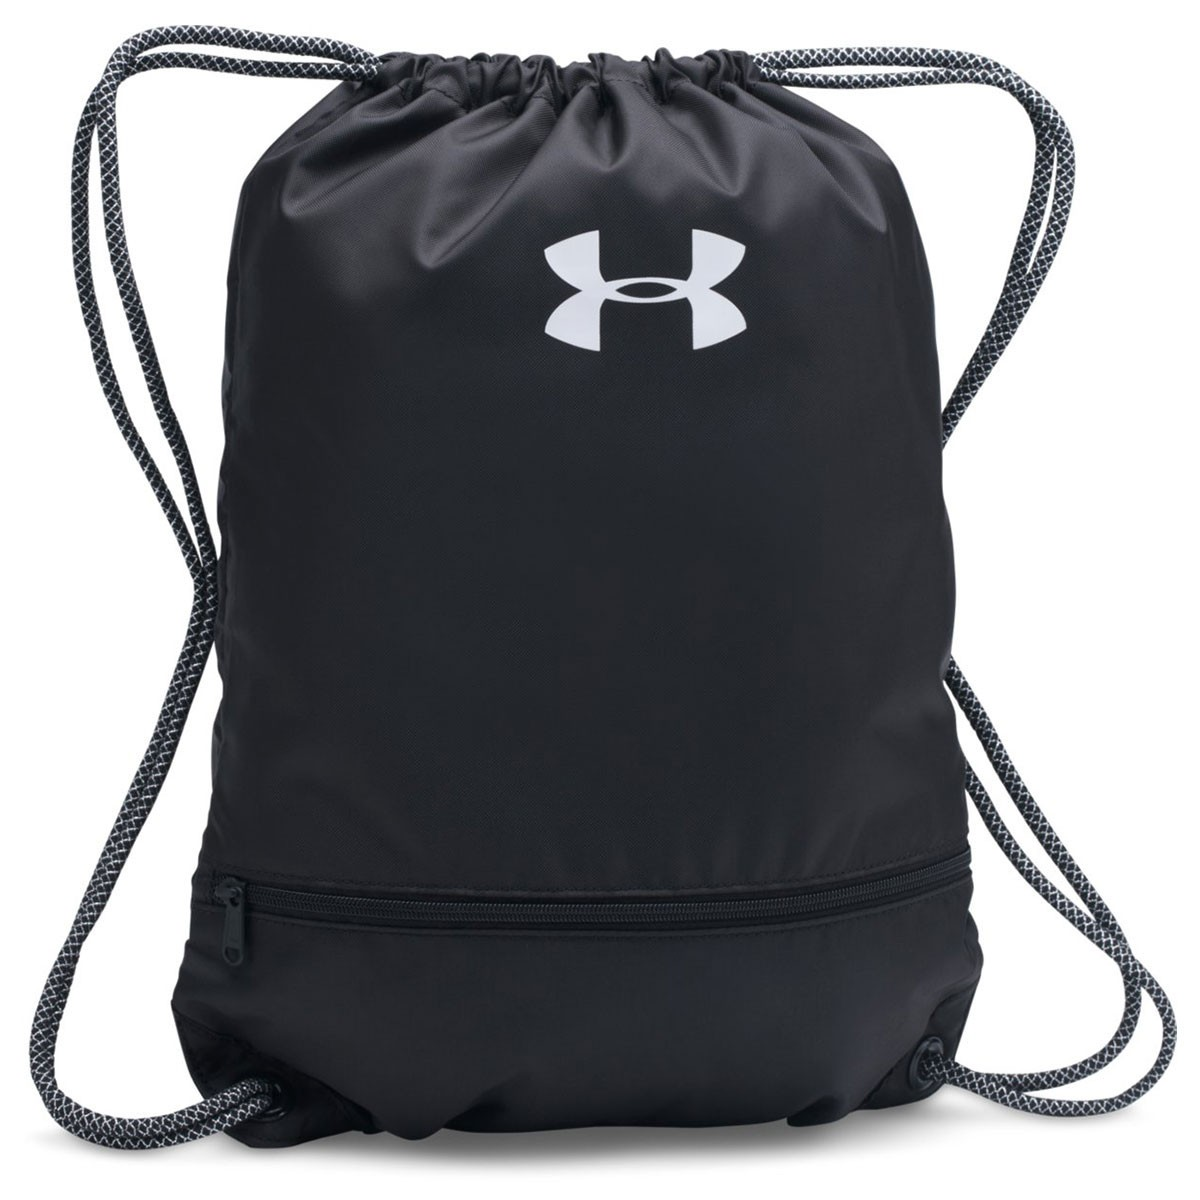 Under Armour 2017 UA Team Sackpack Drawstring Backpack - Accessories ... 233a7532da